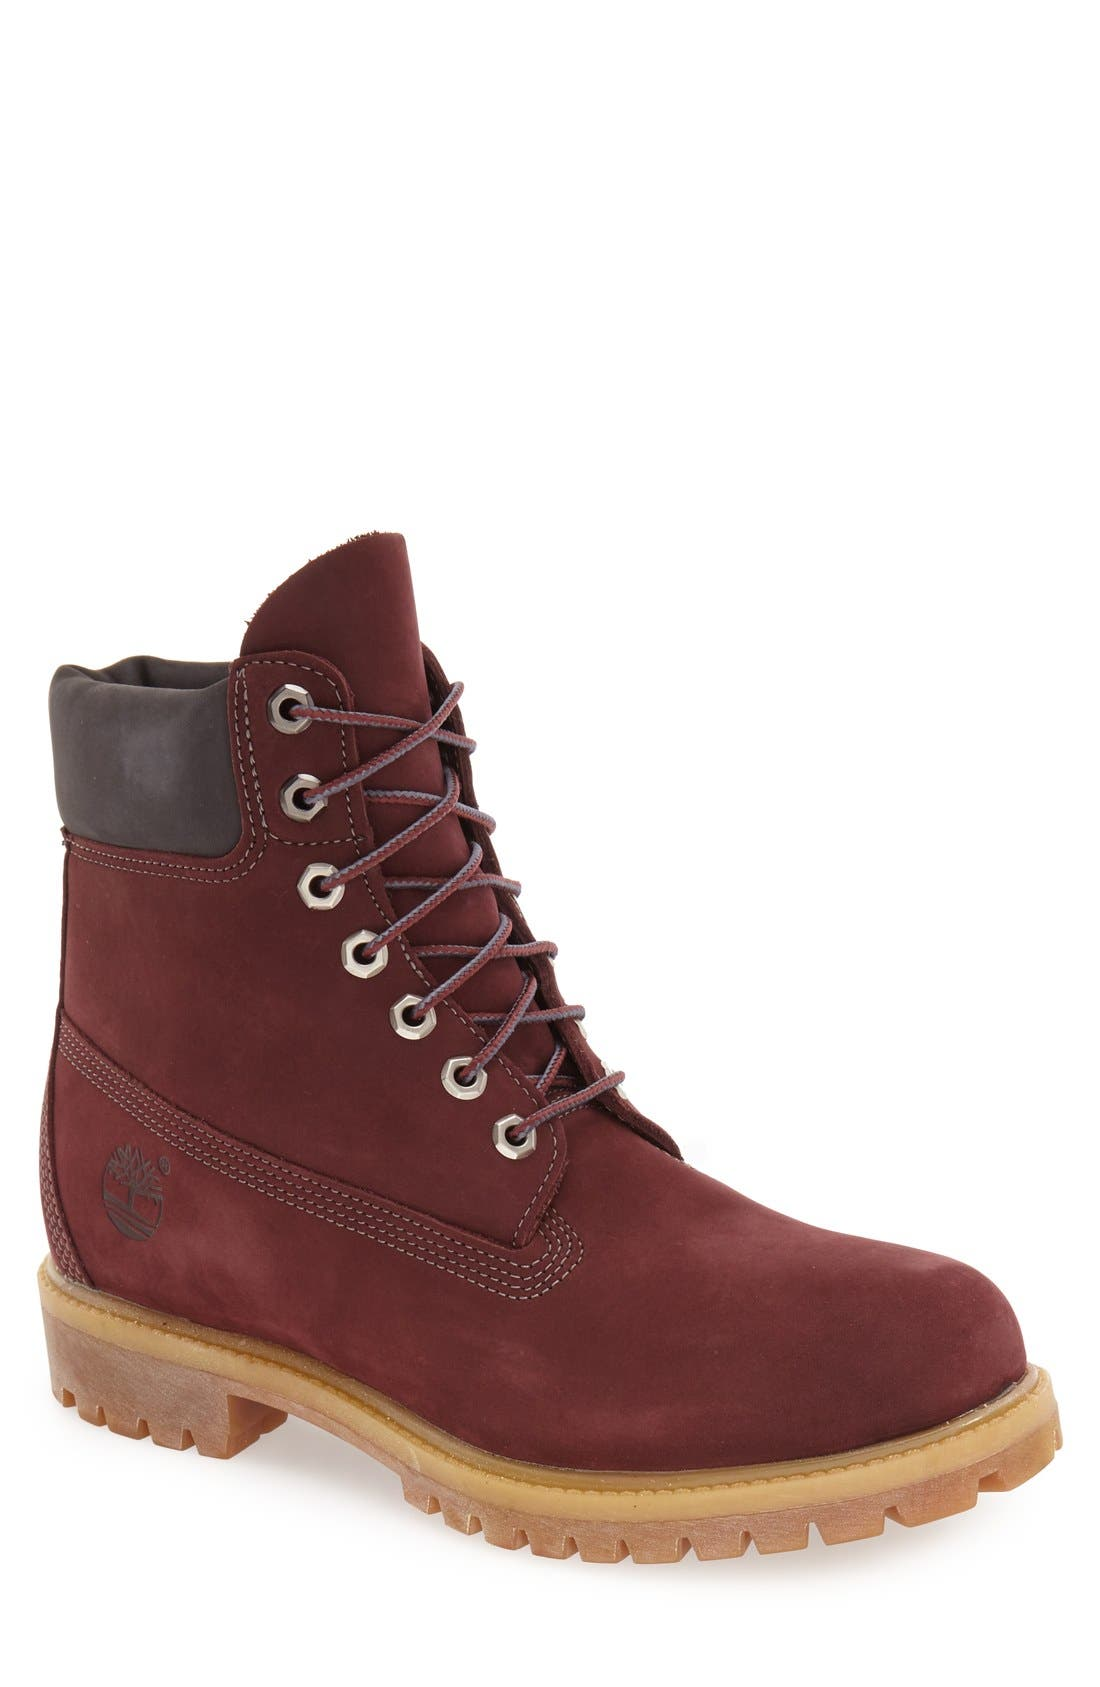 Alternate Image 1 Selected - Timberland 'Autumn Mashup' Waterproof Boot (Men)